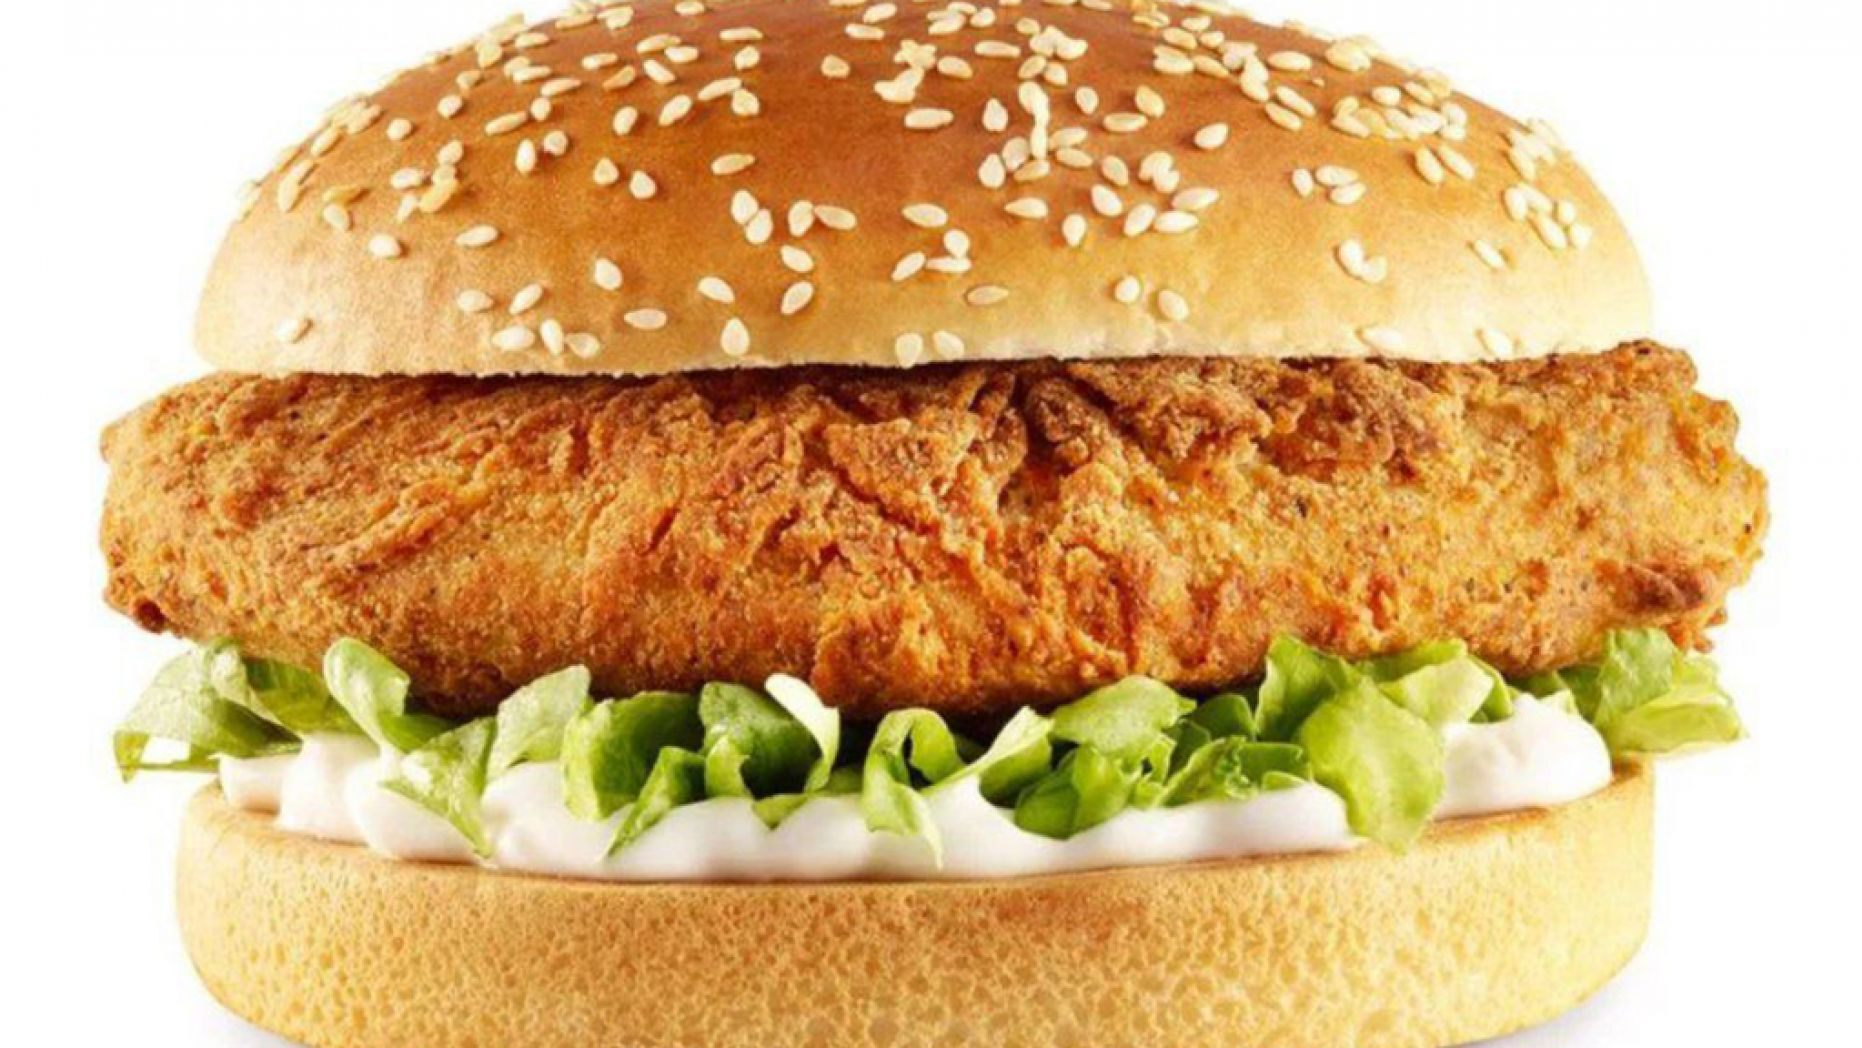 """The new faux-chicken offering, called """"The Imposter,"""" will feature a Quorn chicken fillet, a layer of vegan mayo and iceberg lettuce on a seeded bun.(KFC)"""